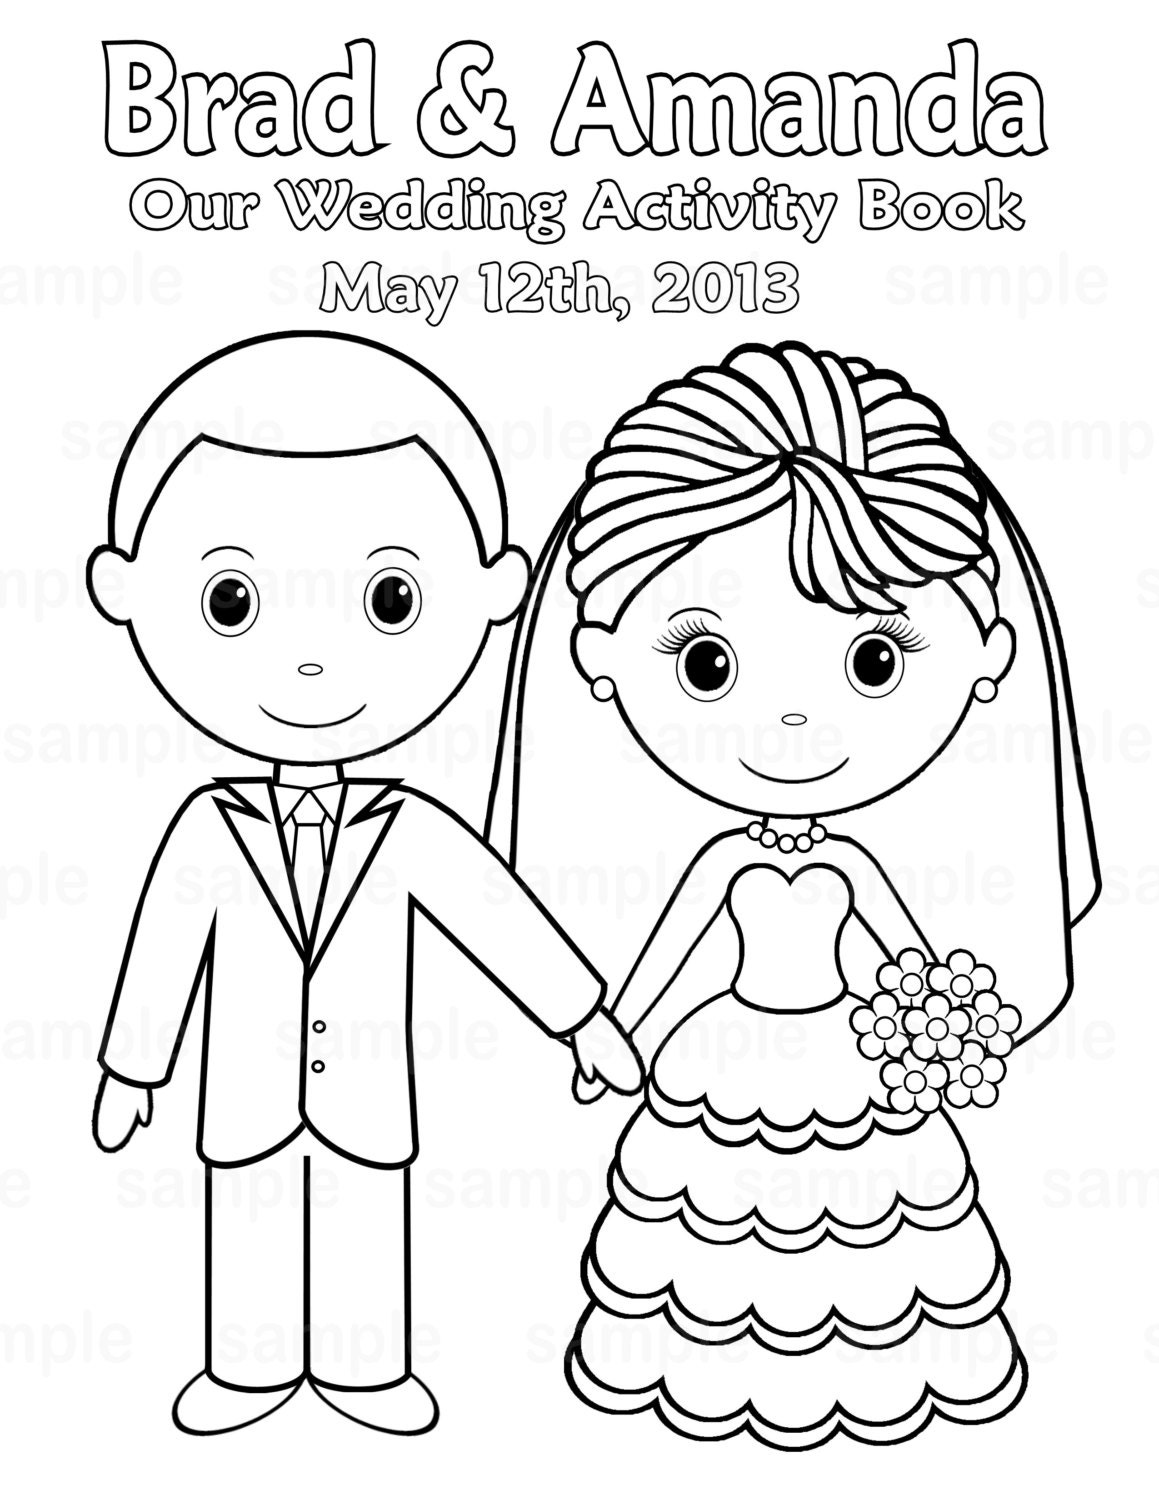 Wedding Activity Book Coloring Pages Coloring Pages